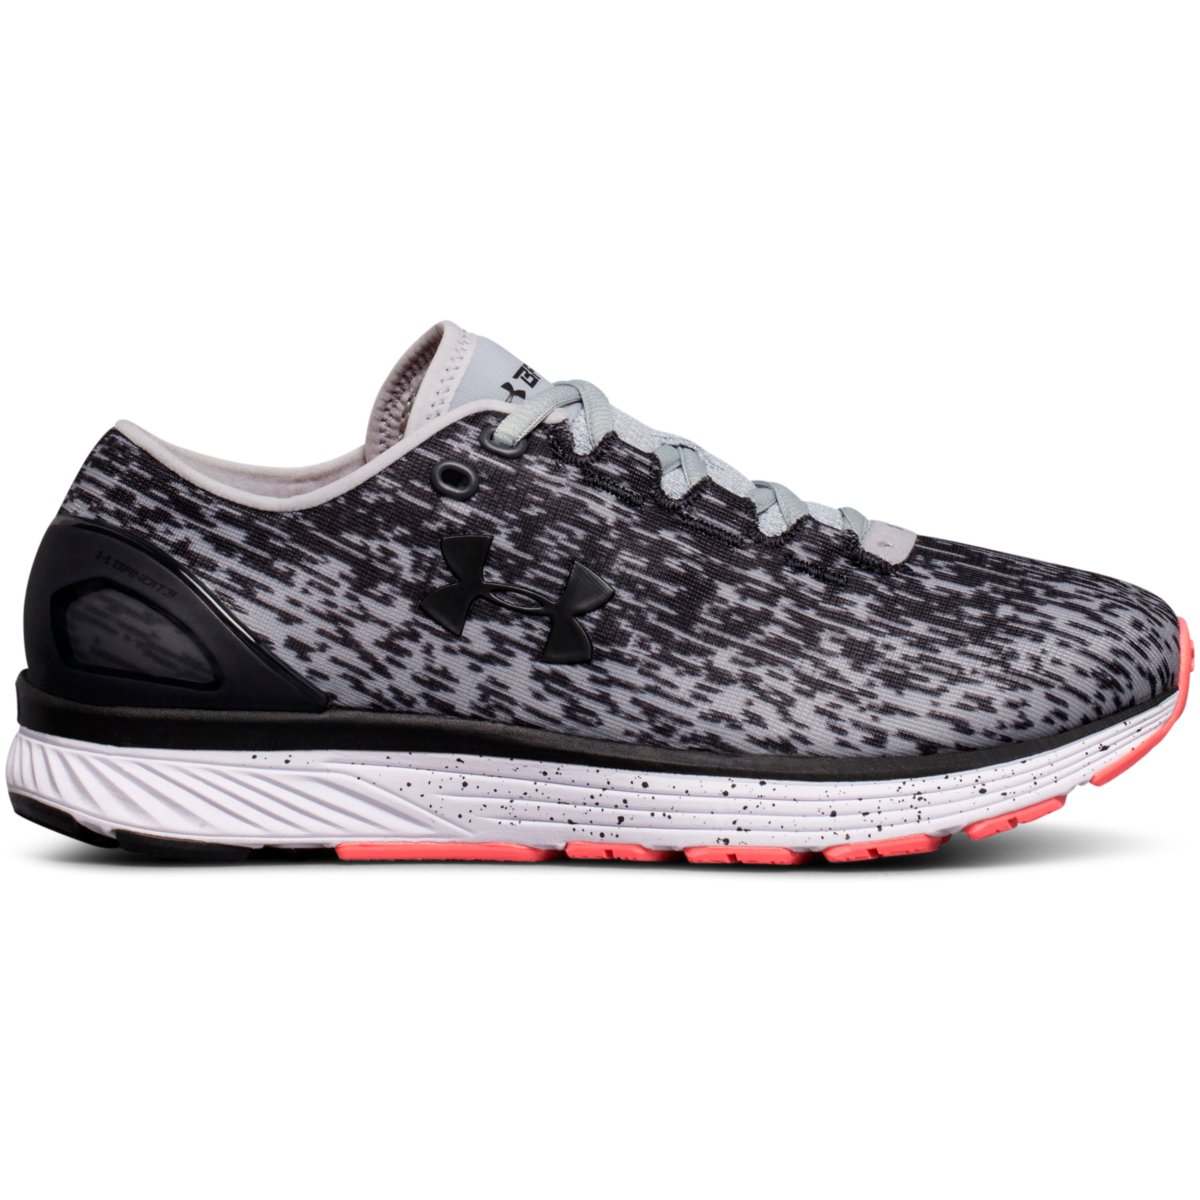 375e2717e wiggle.com | Under Armour Women's Charged Bandit 3 Ombre Running Shoe | Running  Shoes